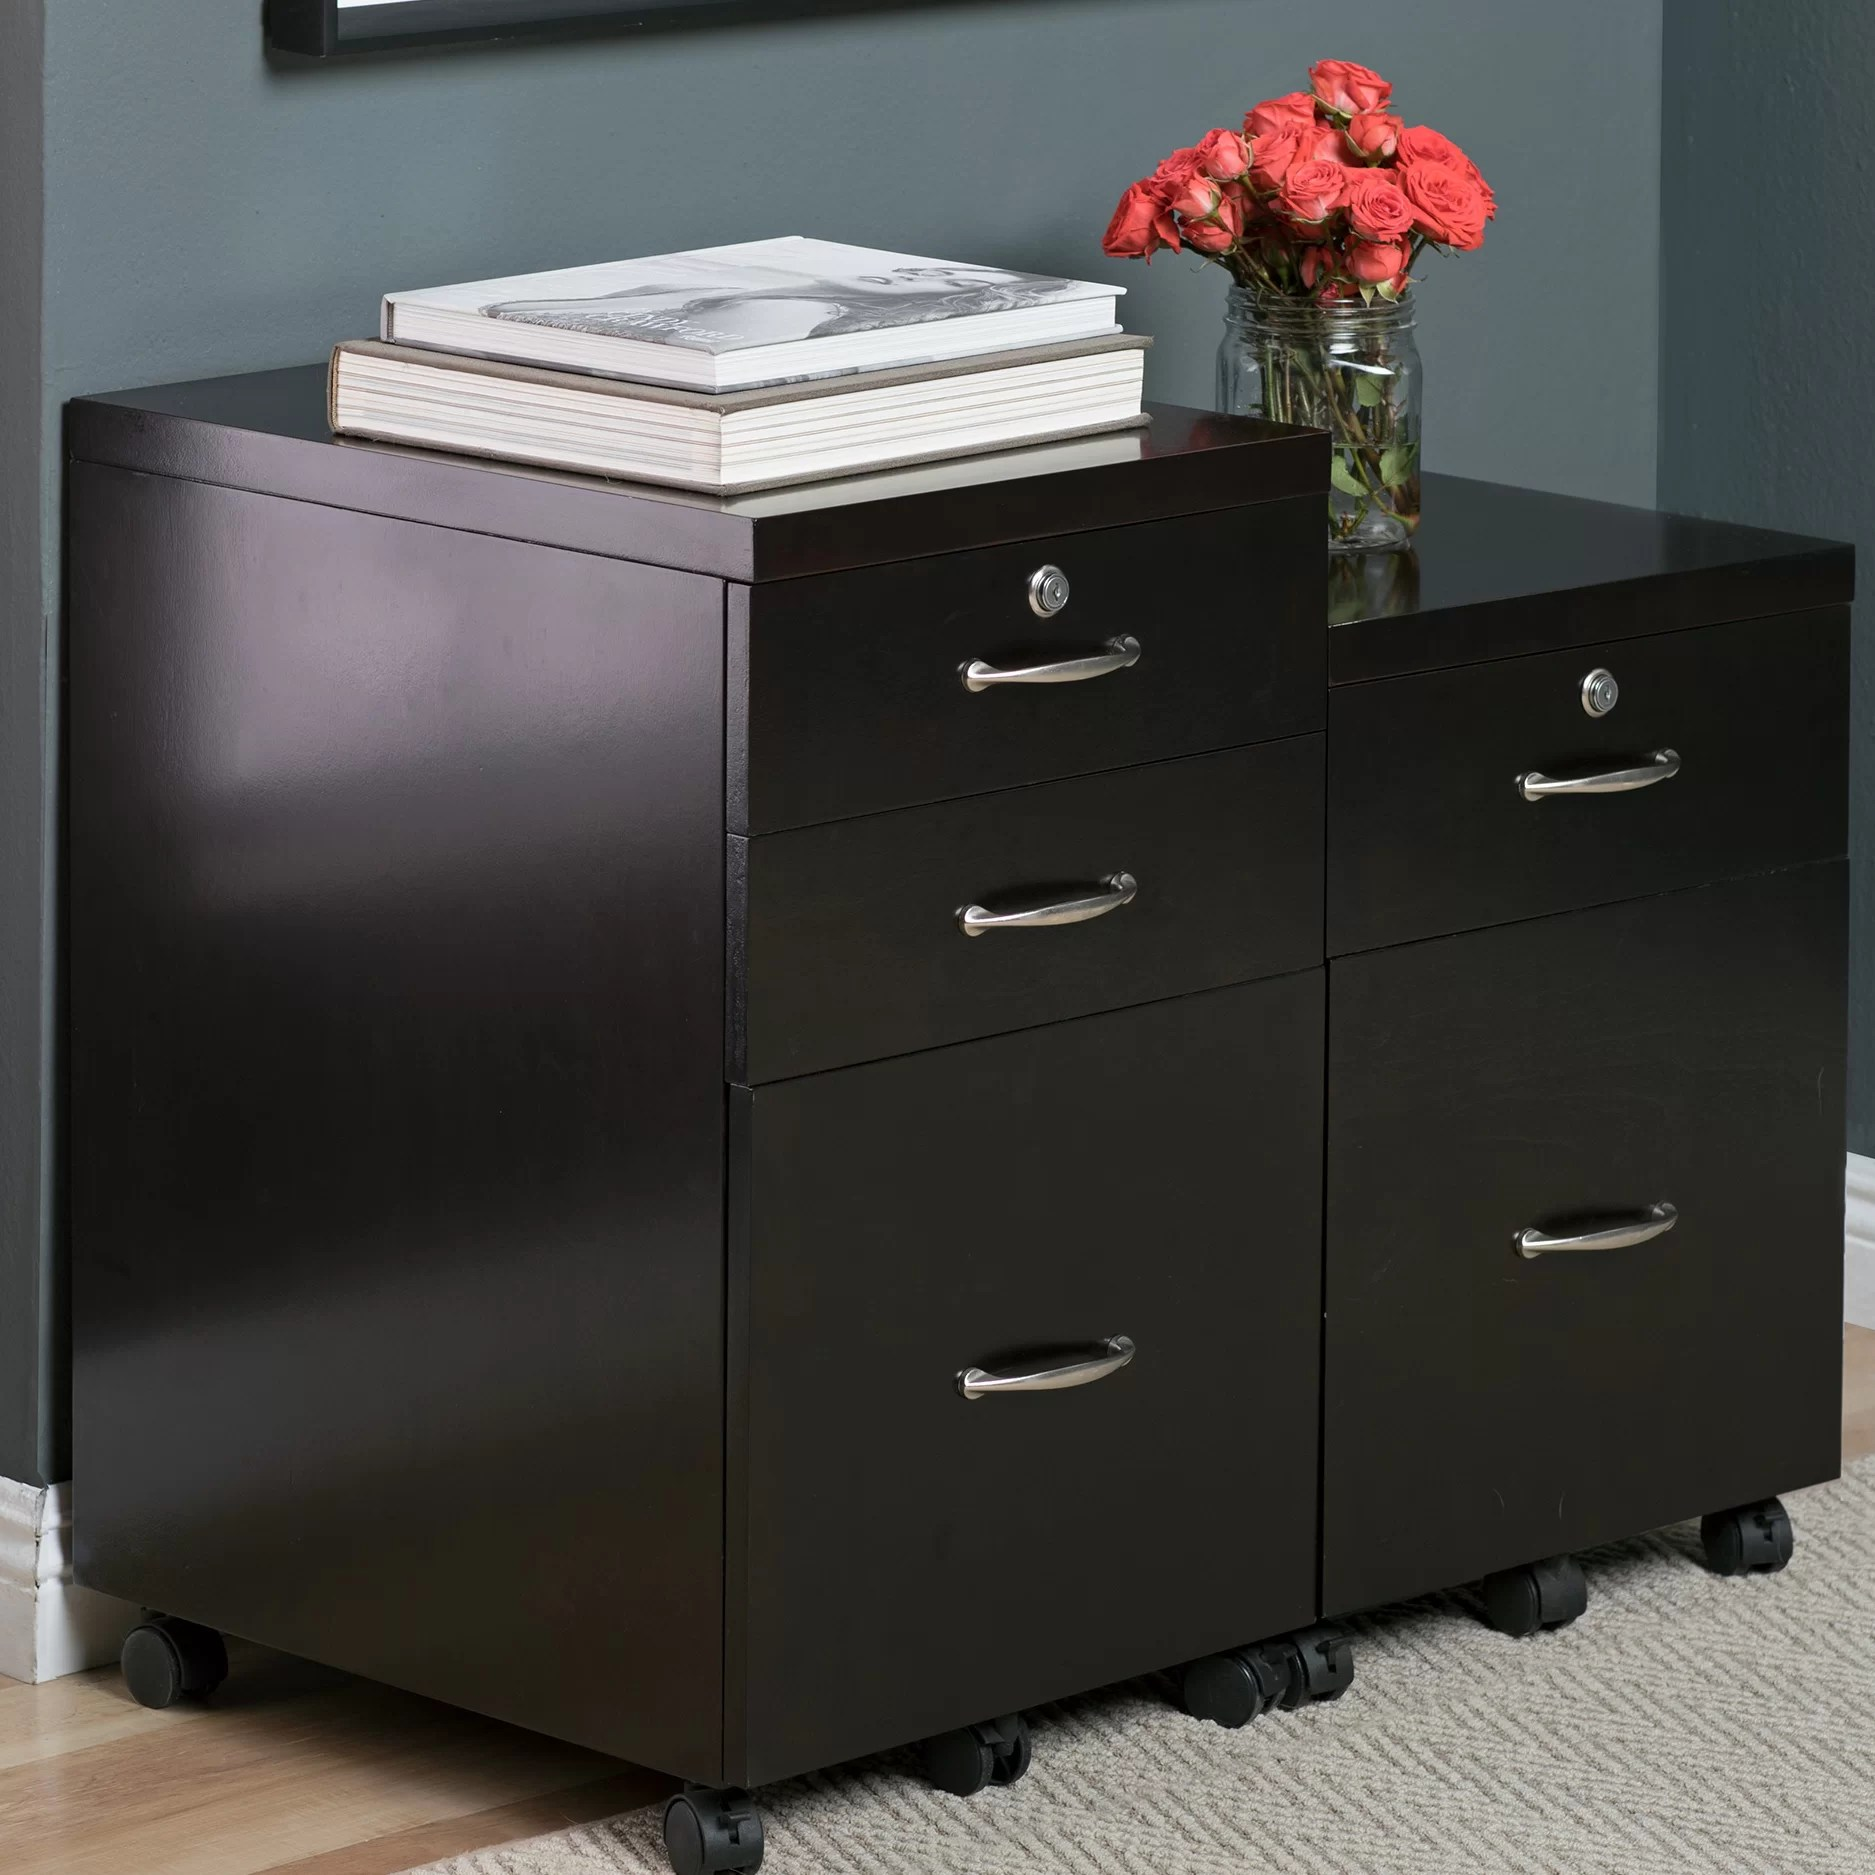 Solid Wood File Cabinet Newel 3 Drawer Mobile Vertical Filing Cabinet